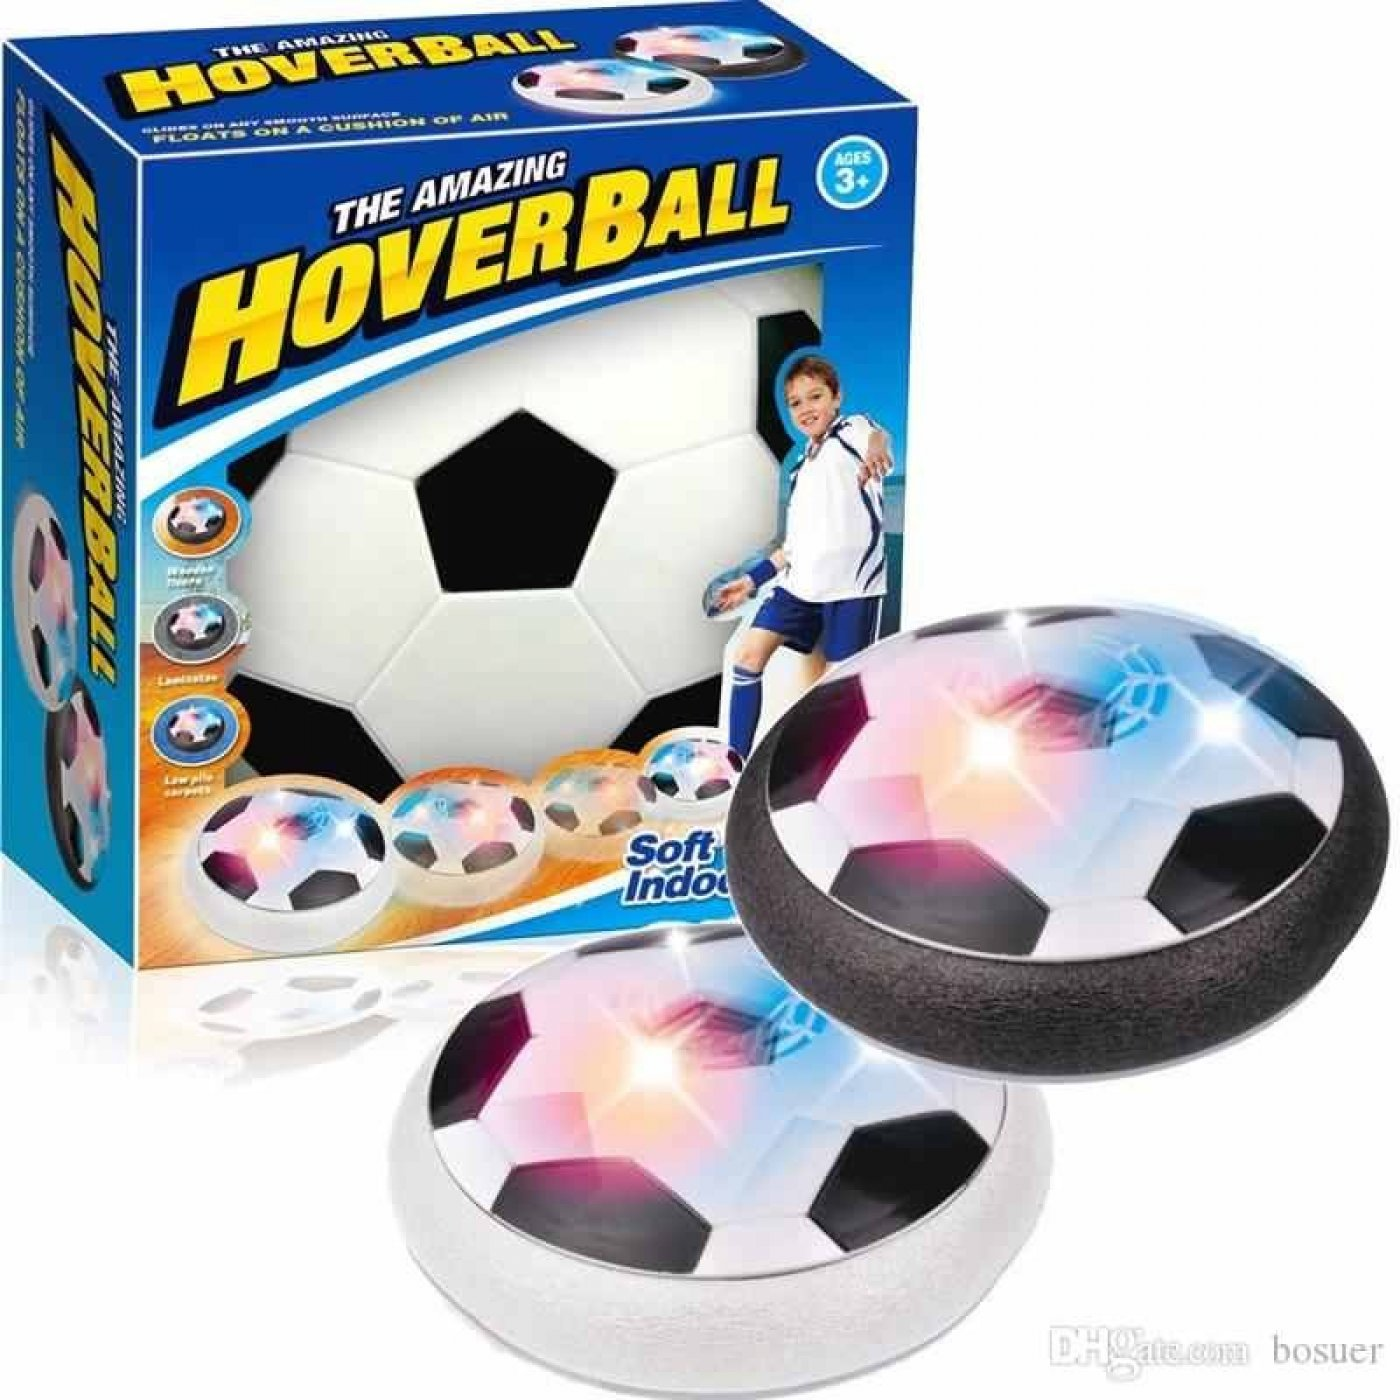 The amazing hover ball